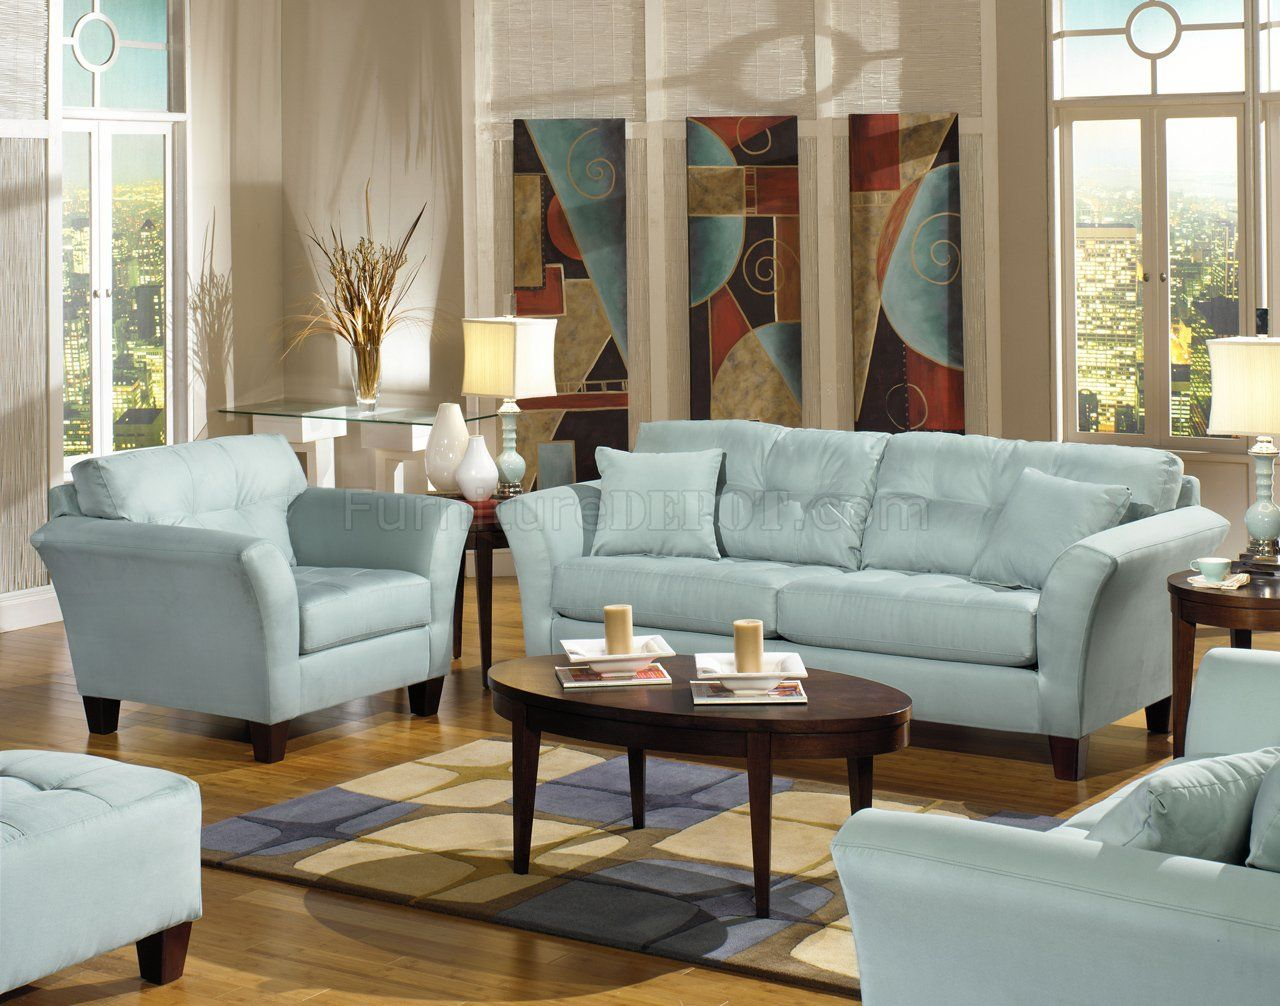 Light Blue Leather Sofa Set For Elegant Living Room Interior